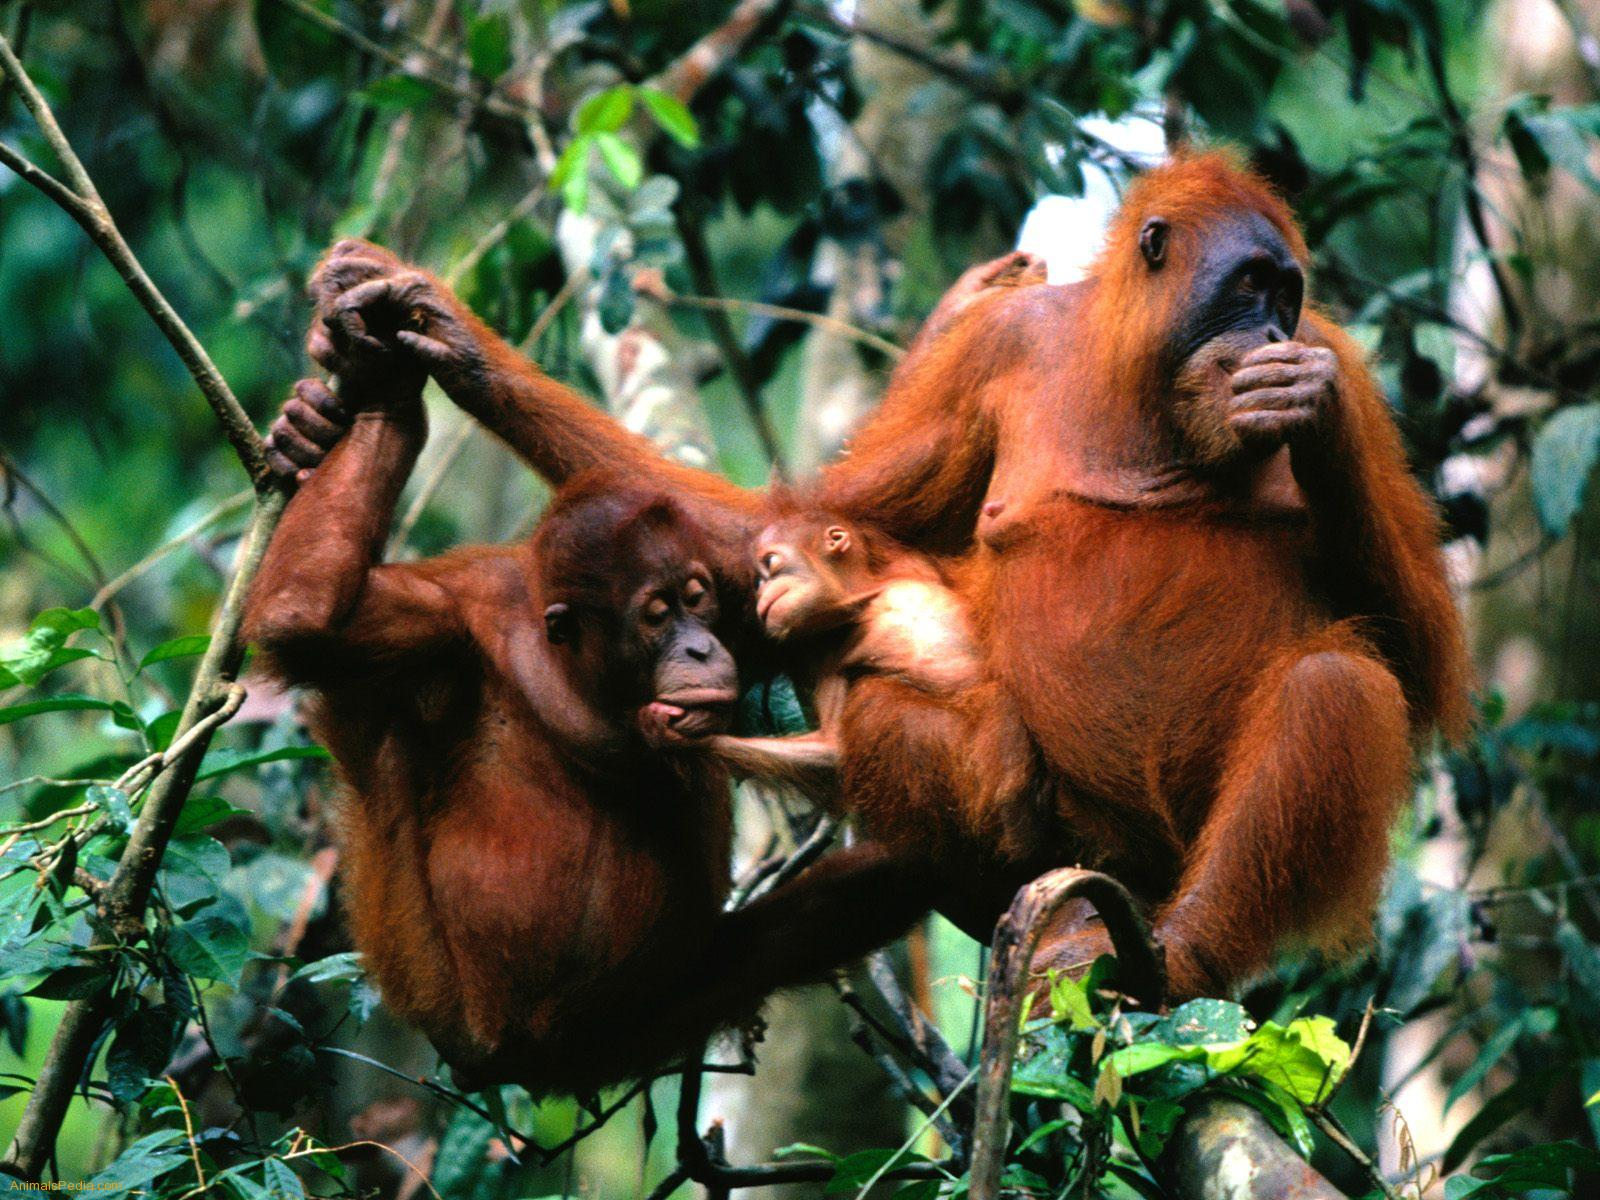 Help us in our Mission to save orangutans and their habitat.